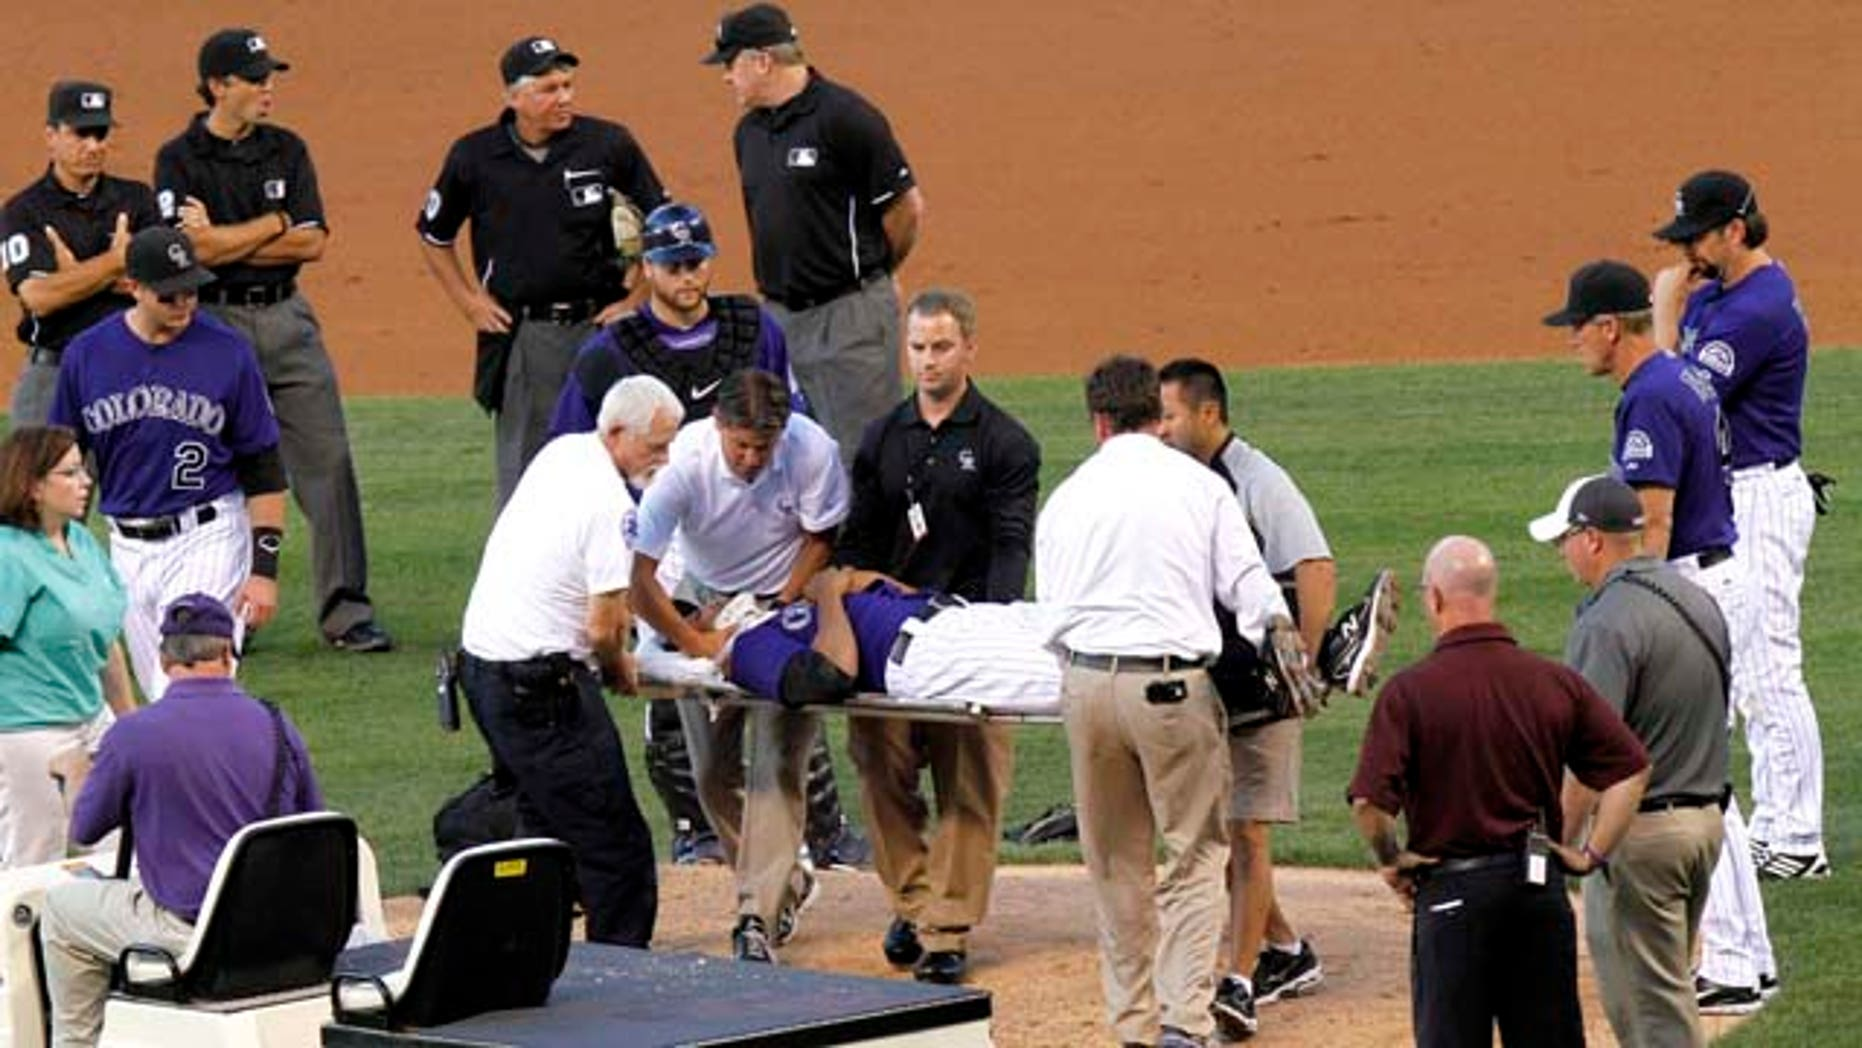 Colorado Rockies starting pitcher Juan Nicasio is surrounded by teammates and medical personnel on his way off the field after Washington Nationals' Ian Desmond hit him in the head with a line drive during the second inning of a baseball game Friday, Aug. 5, 2011 in Denver. (AP Photo/Barry Gutierrez)